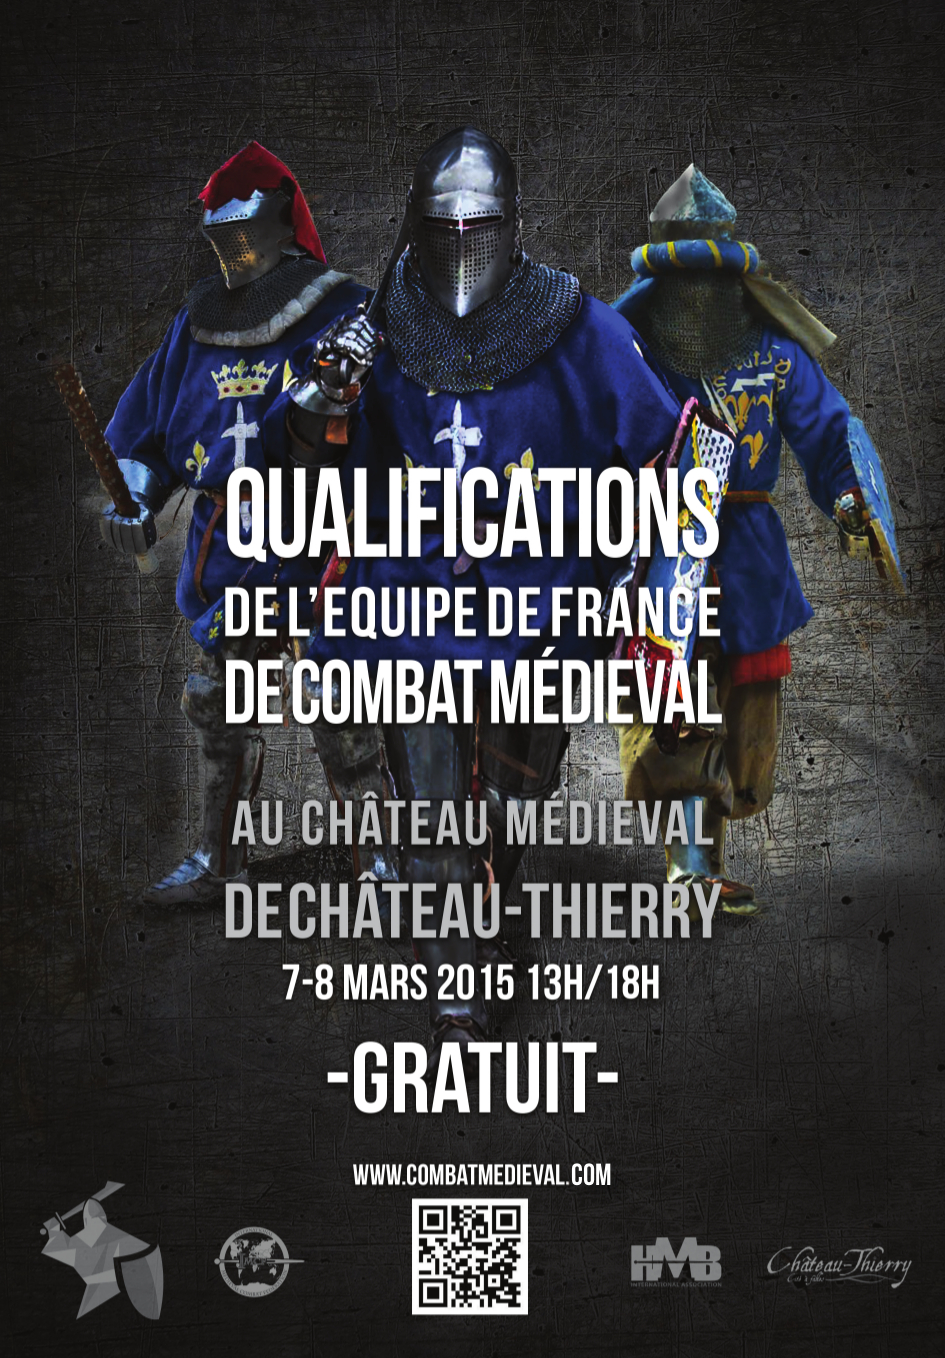 affiche qualifications CT 7 et 8 mars   Château Thierry   Inscription aux qualifications équipe de France 2015